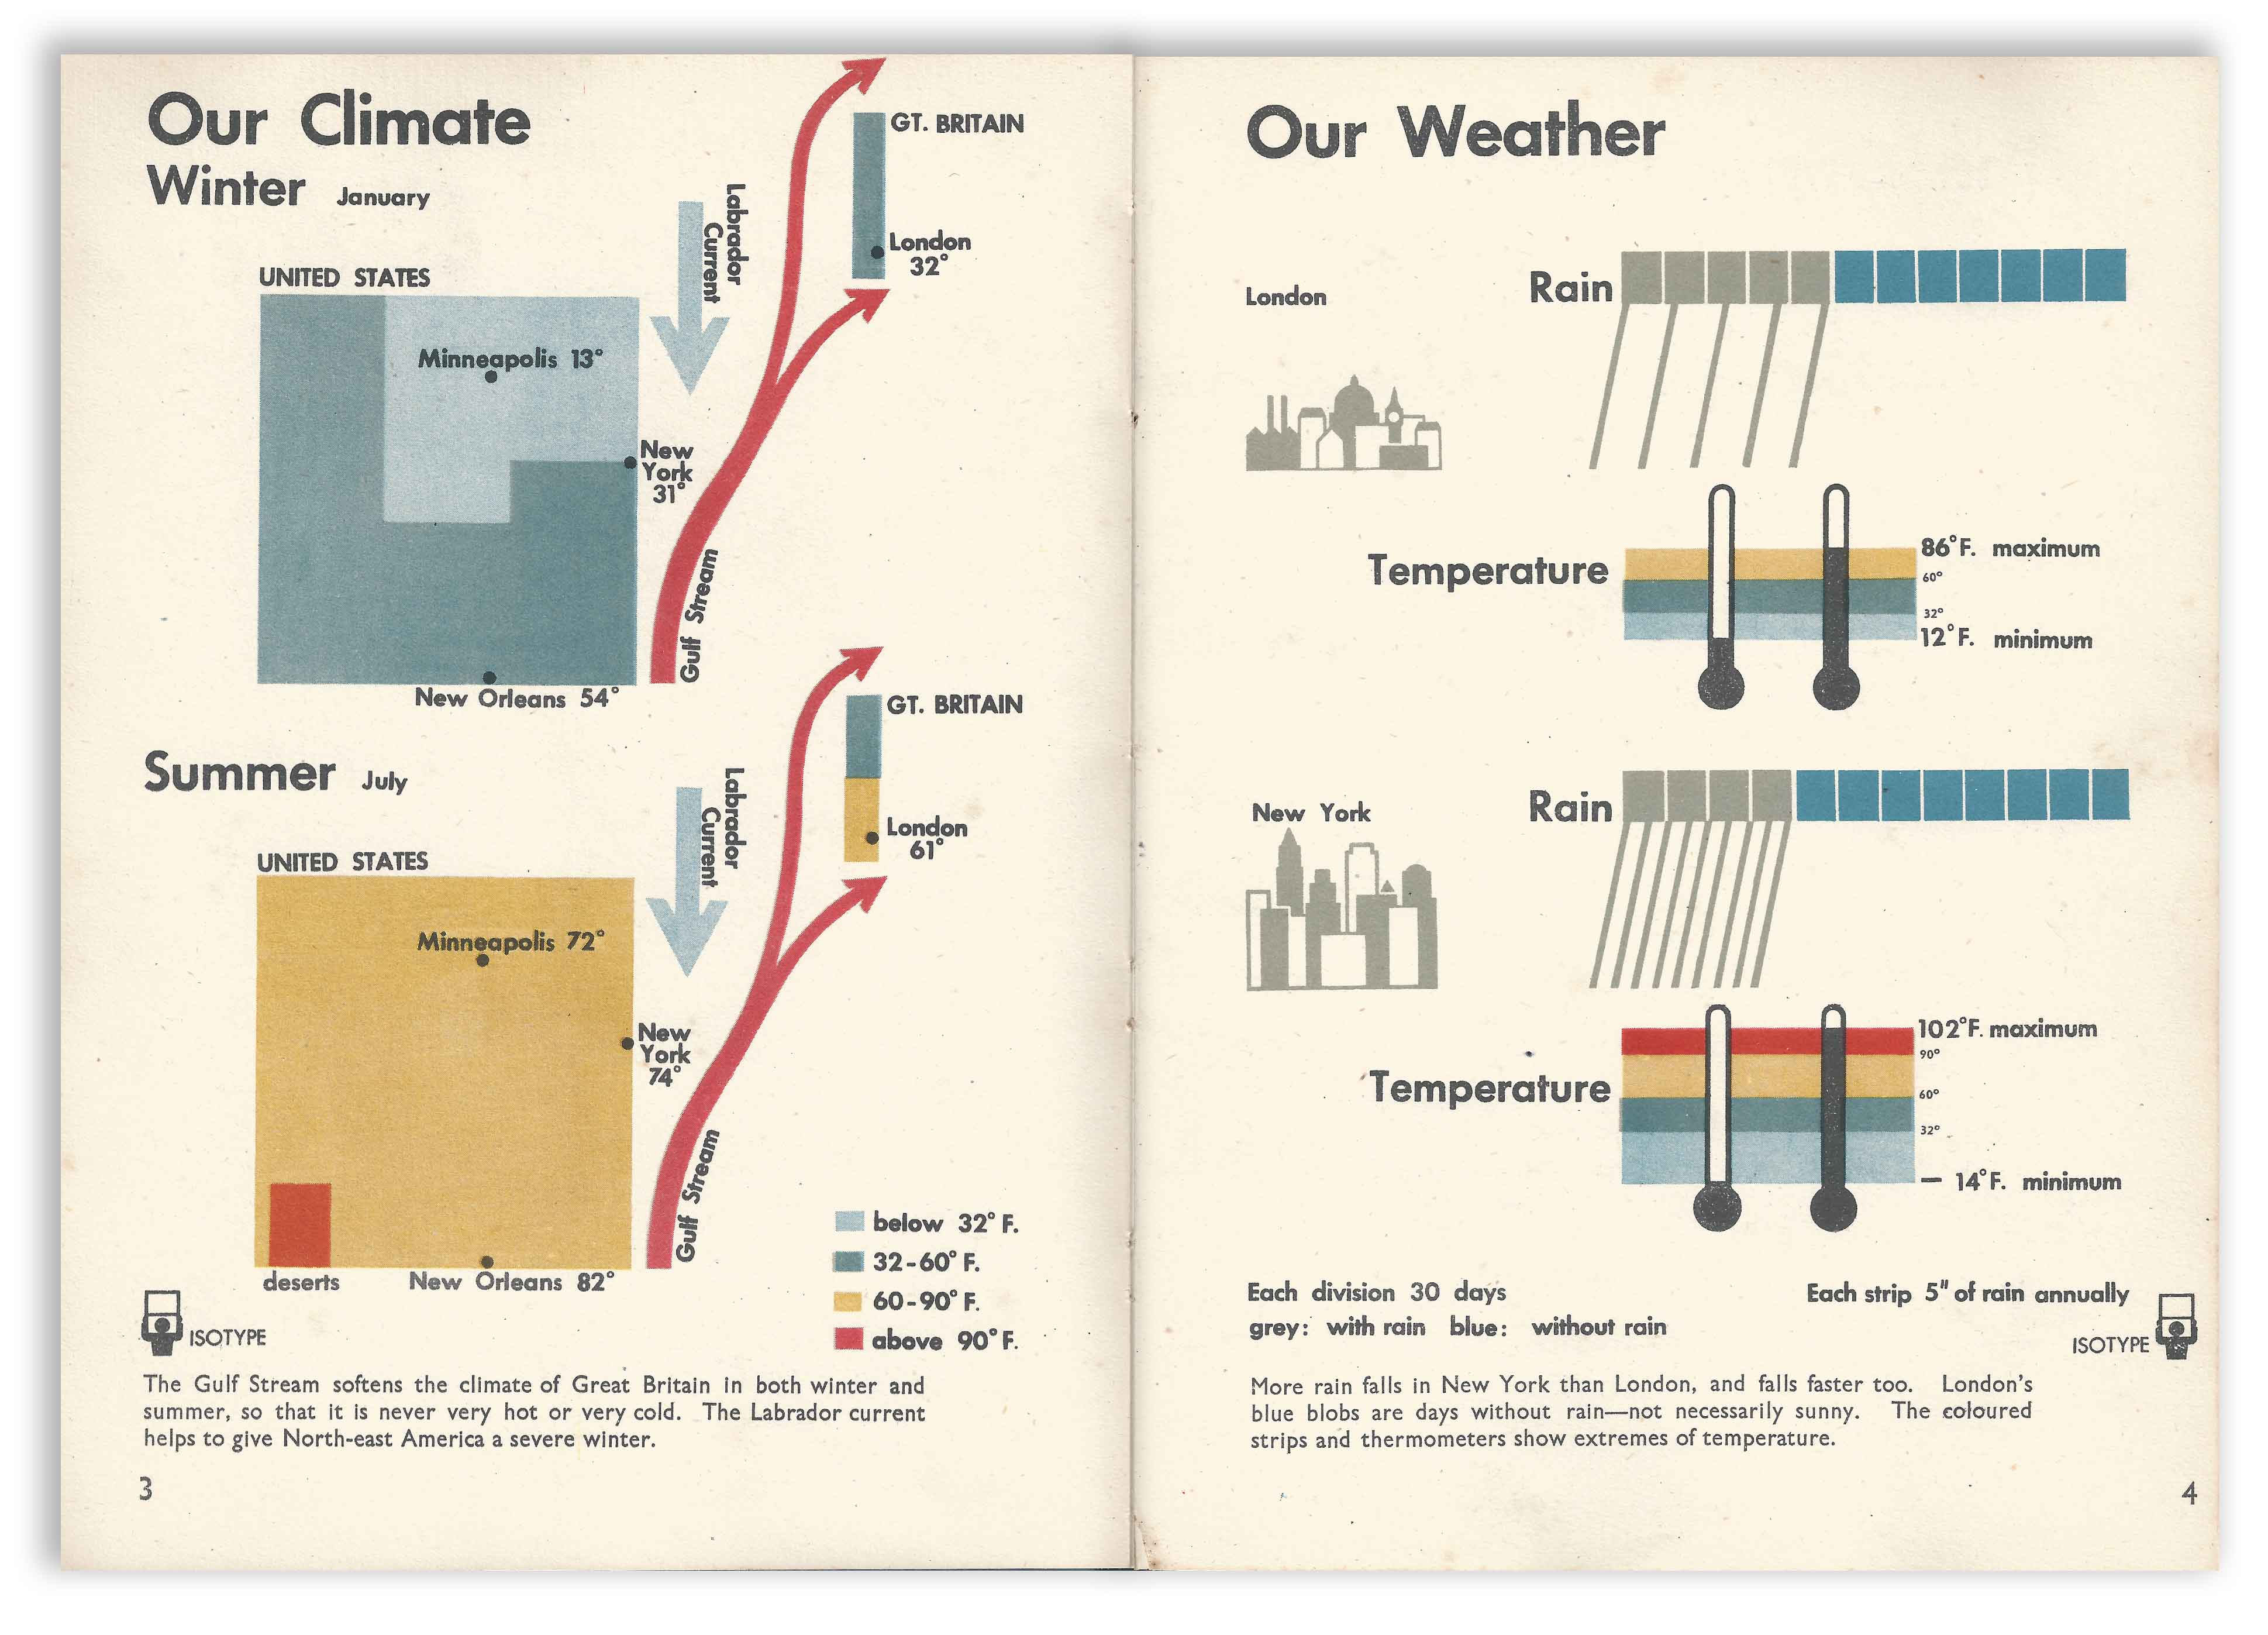 Isotype - Only An Ocean Between - Our Climate